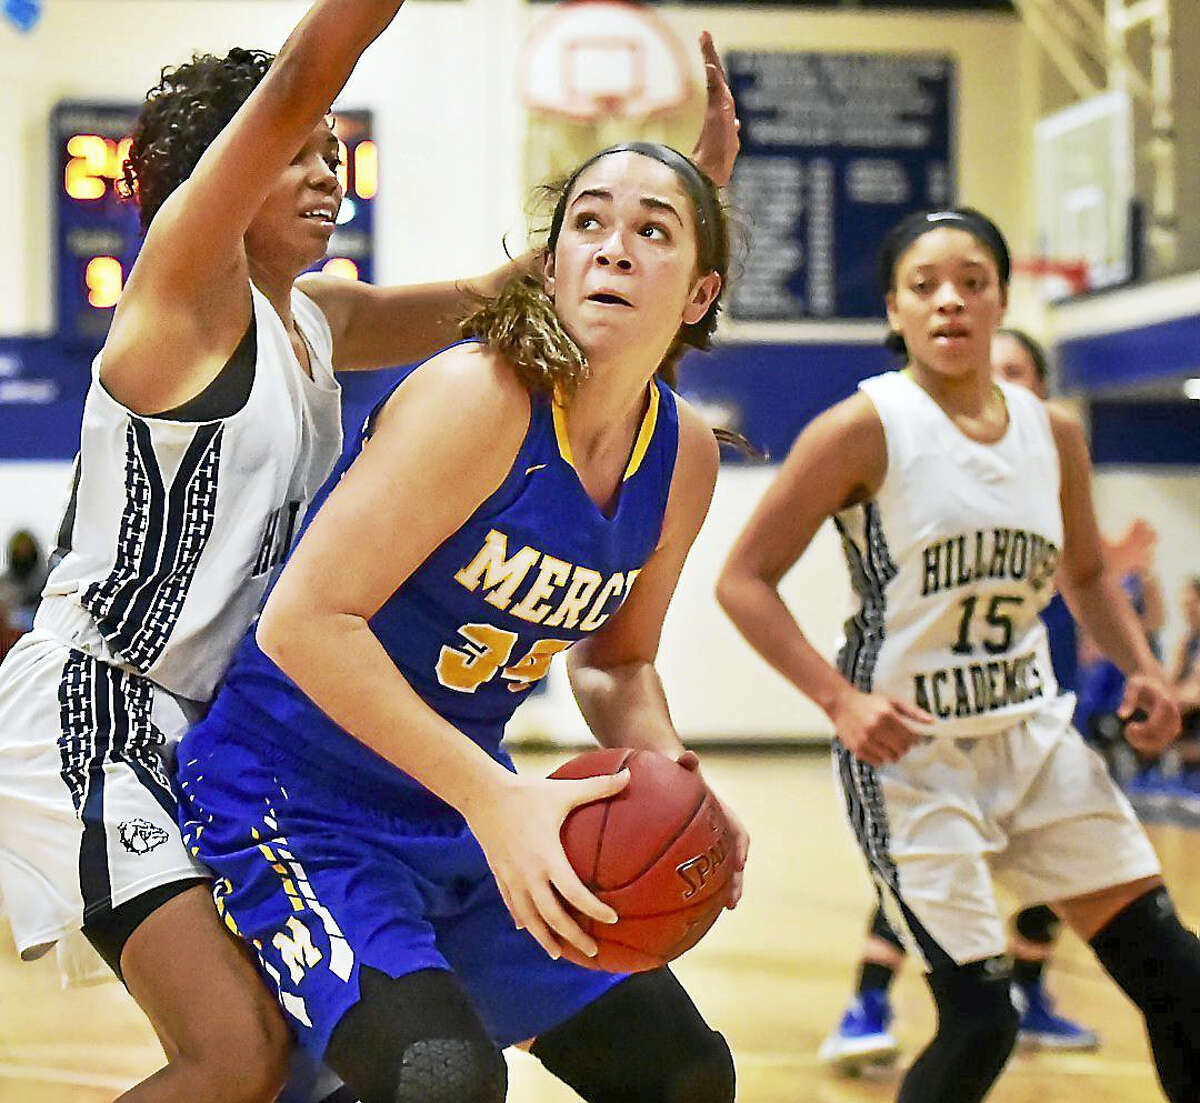 Mercy's Samantha Gallo makes a move around Hillhouse defenders in a victory earlier this season. Mercy remains the second-ranked team as it heads to East Haven with a perfect record Monday.